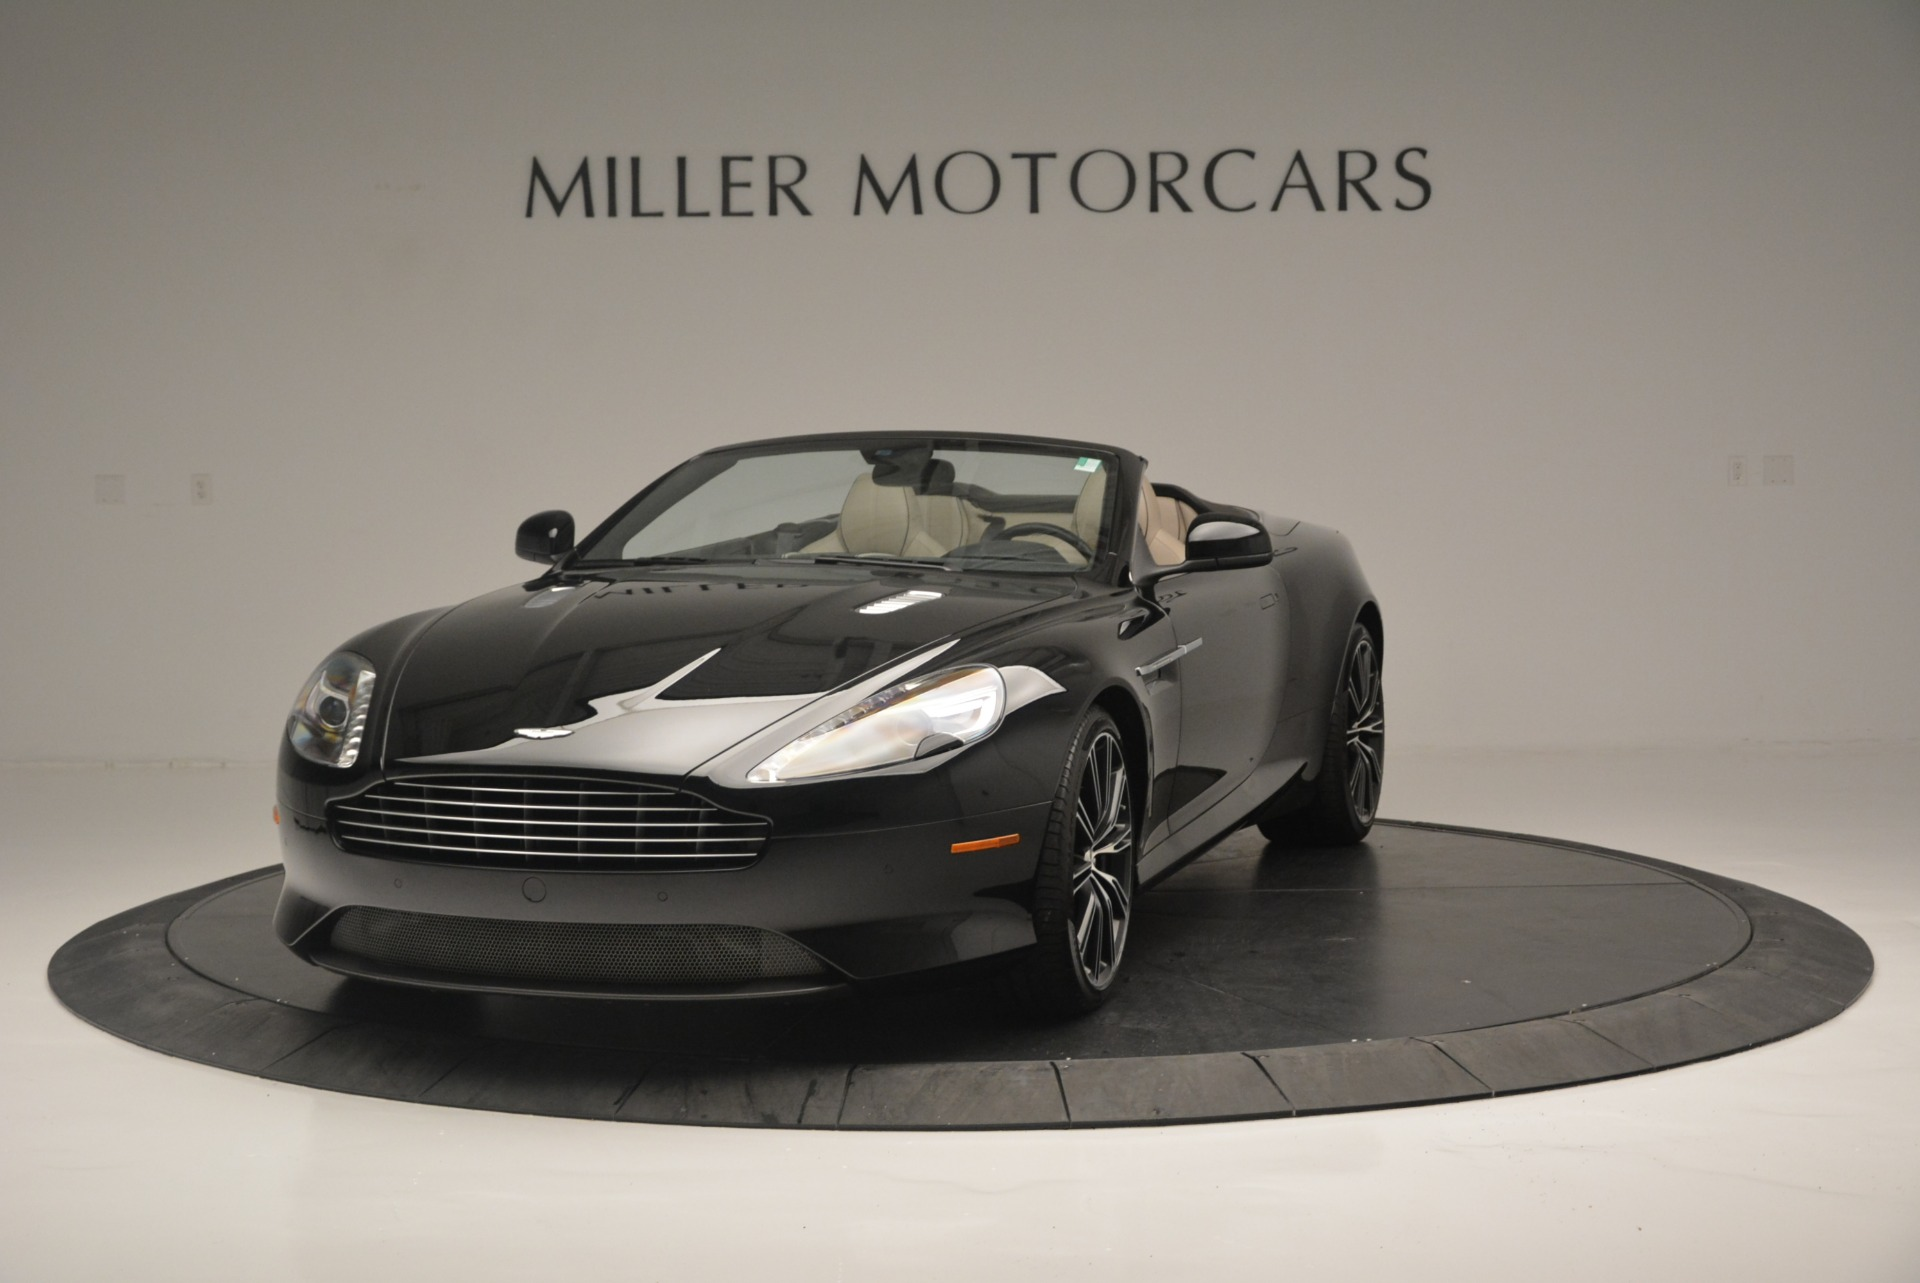 Used 2015 Aston Martin DB9 Volante for sale Sold at Alfa Romeo of Greenwich in Greenwich CT 06830 1